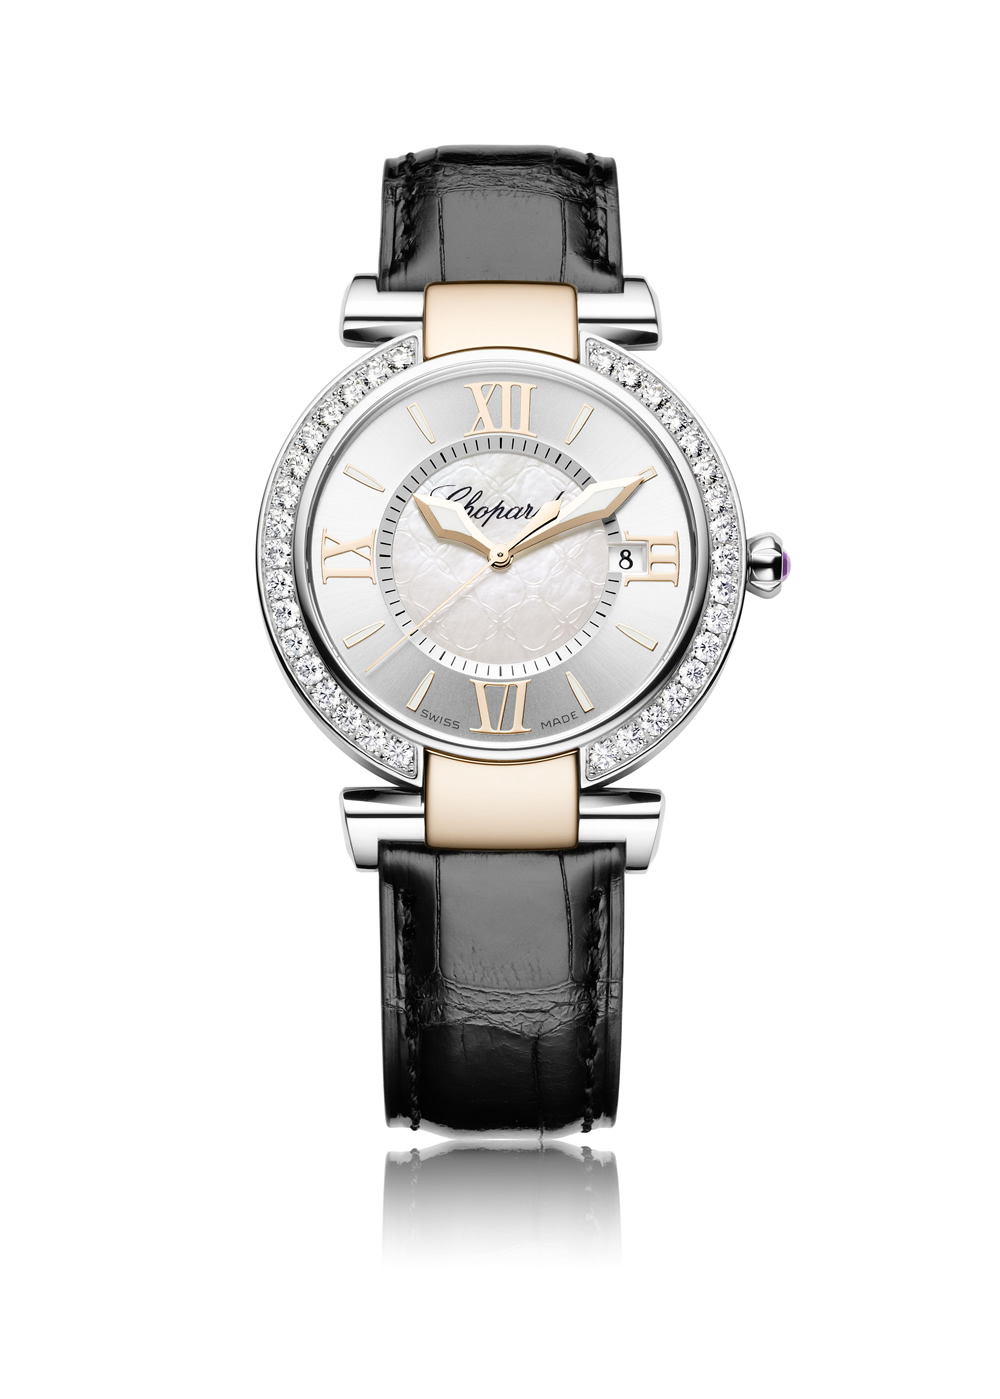 Imperiale Two Tone watch - Imperiale 2 tone leather